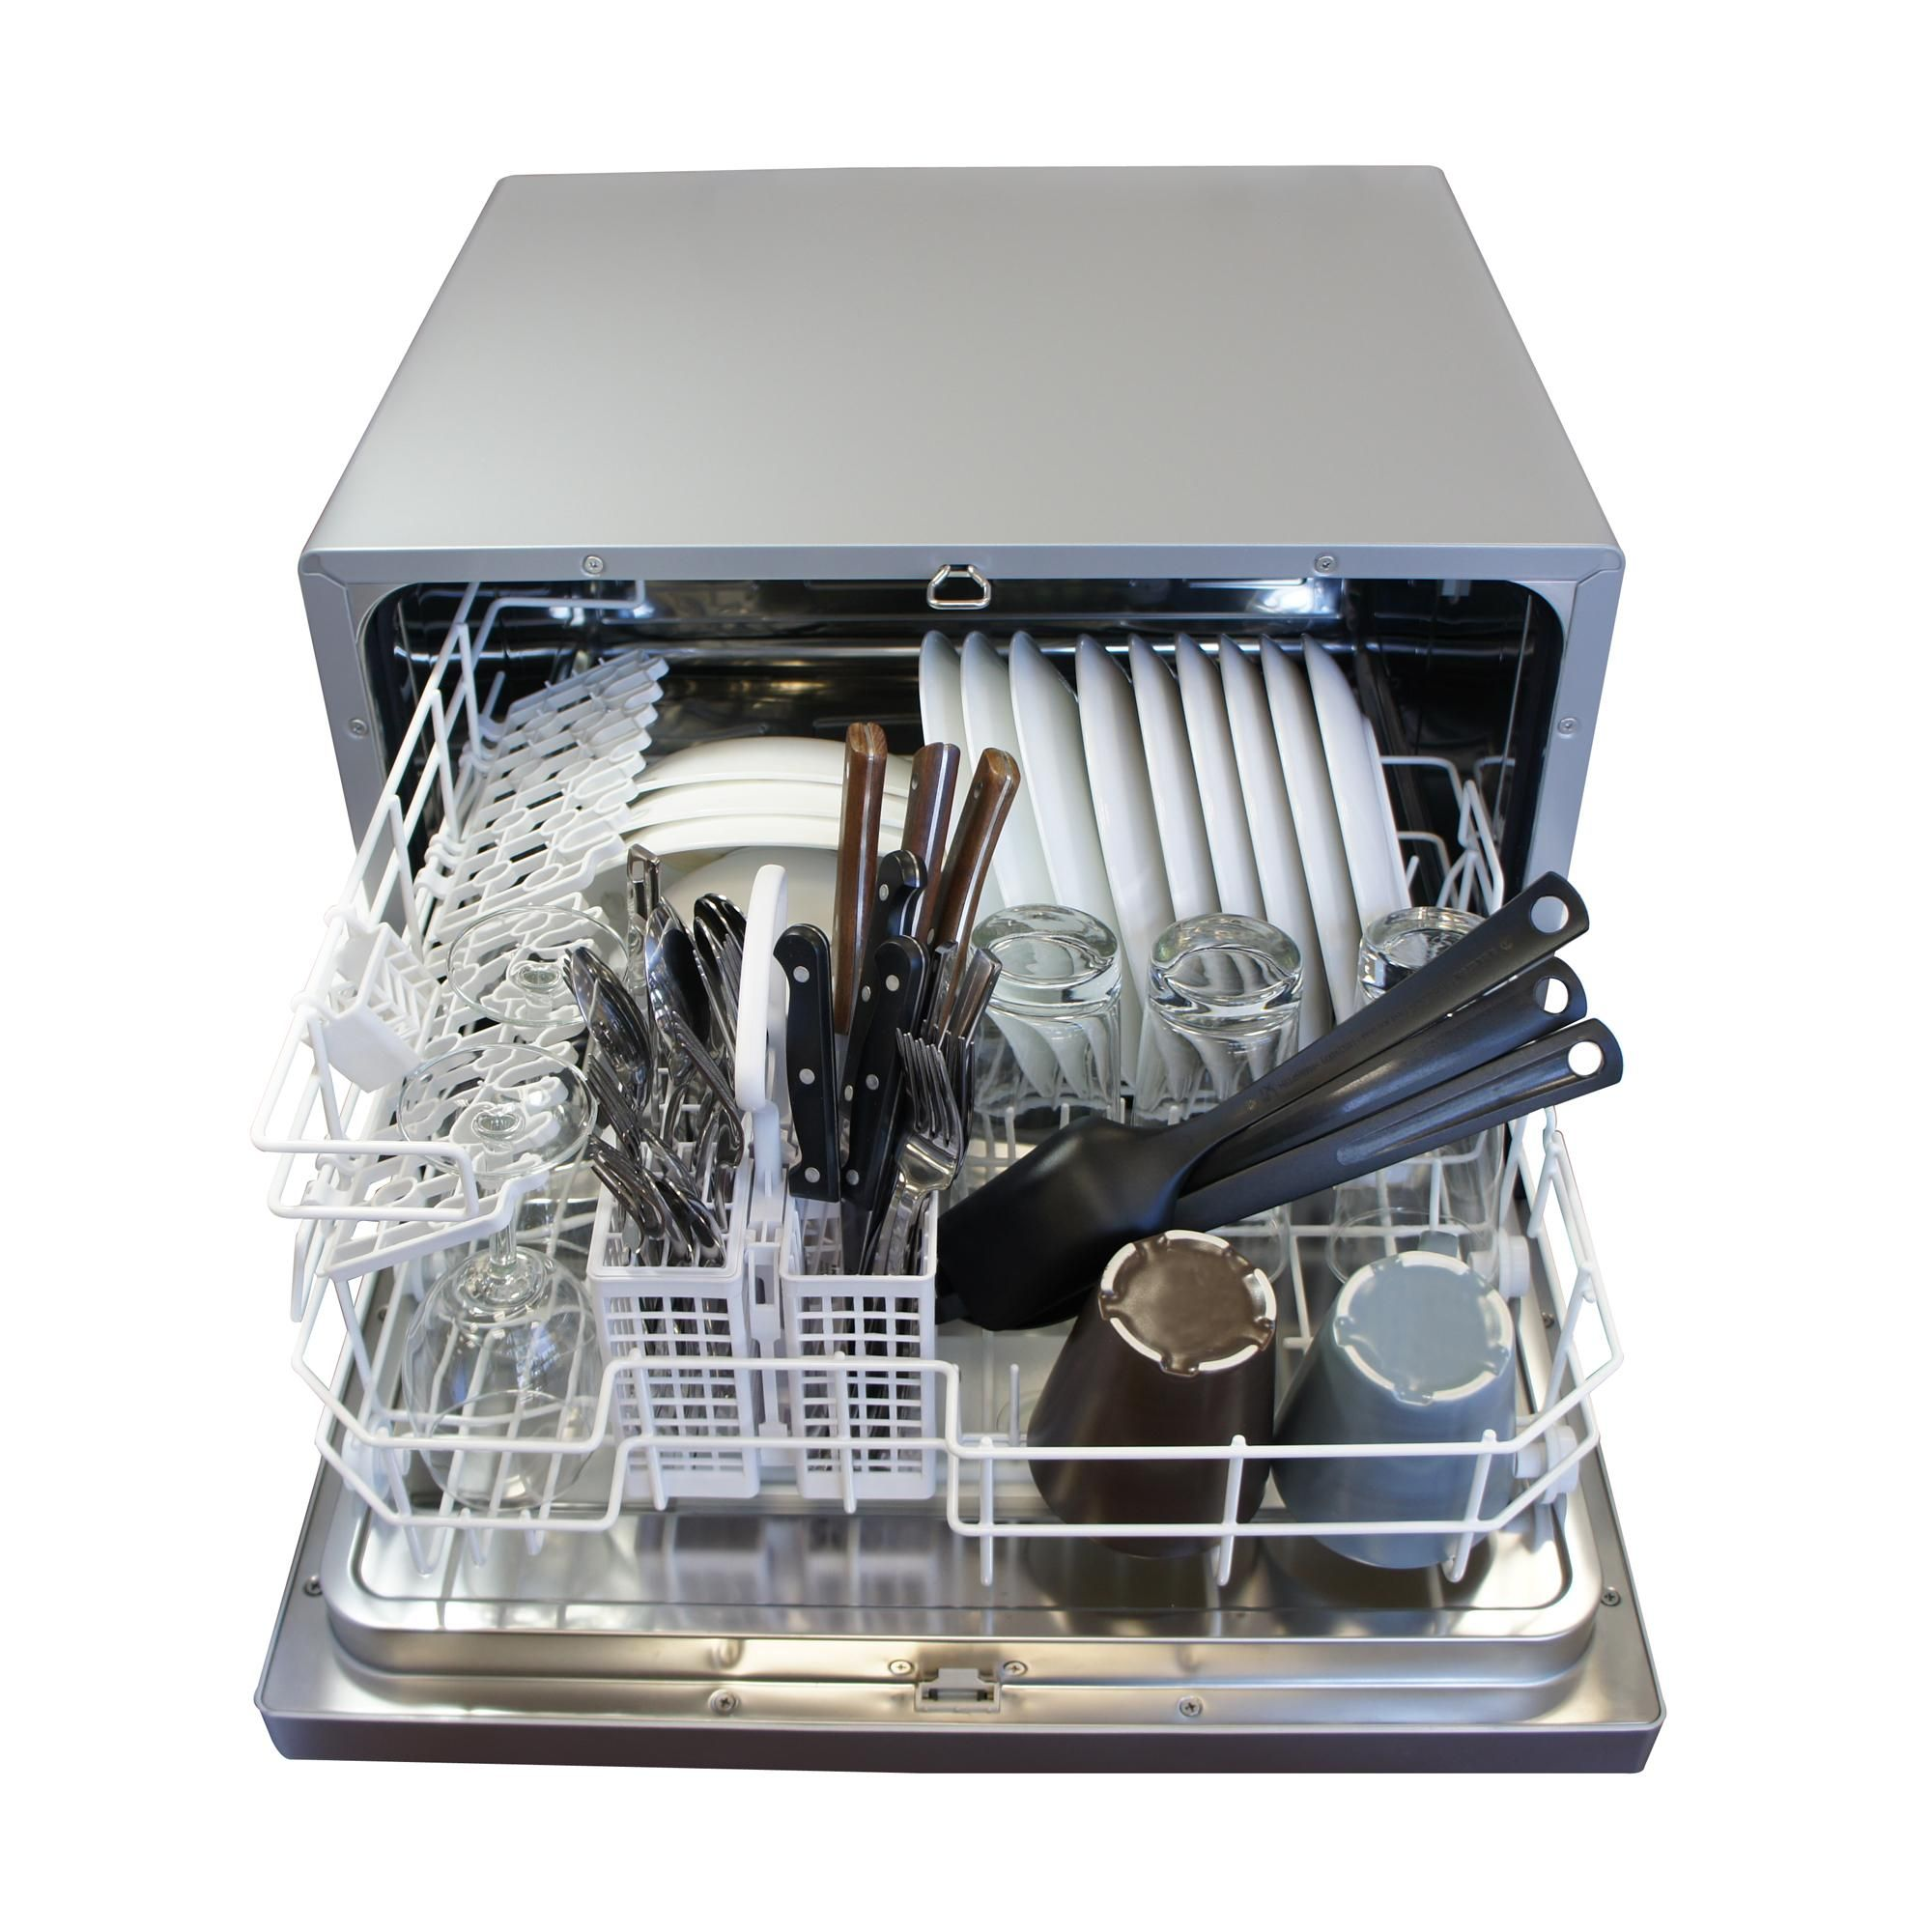 guide countertop trip to your buying dishwasher and dirty reviews down a advantages article cool portable dishwashers edgestar countertops contertop model refrigerators business